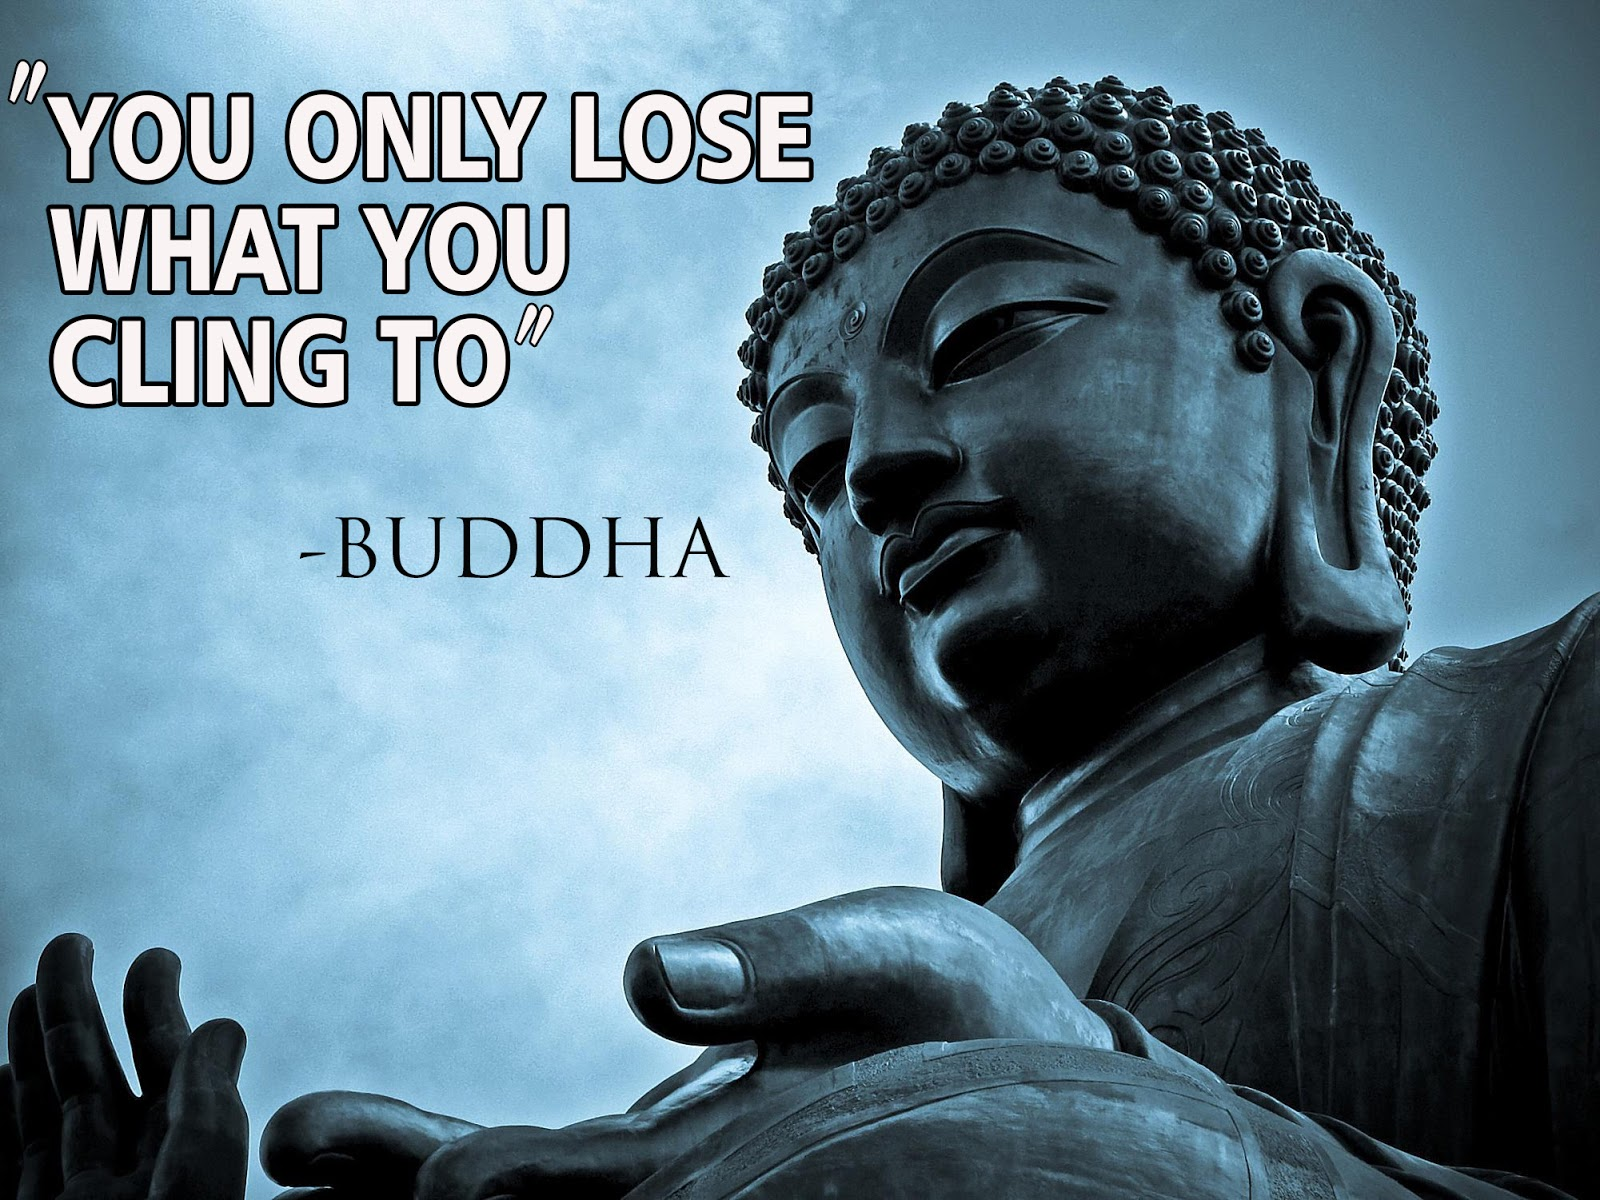 Buddha Life Quotes Top 10 Famous Buddha Quotes With Pictures. Juicy Quote